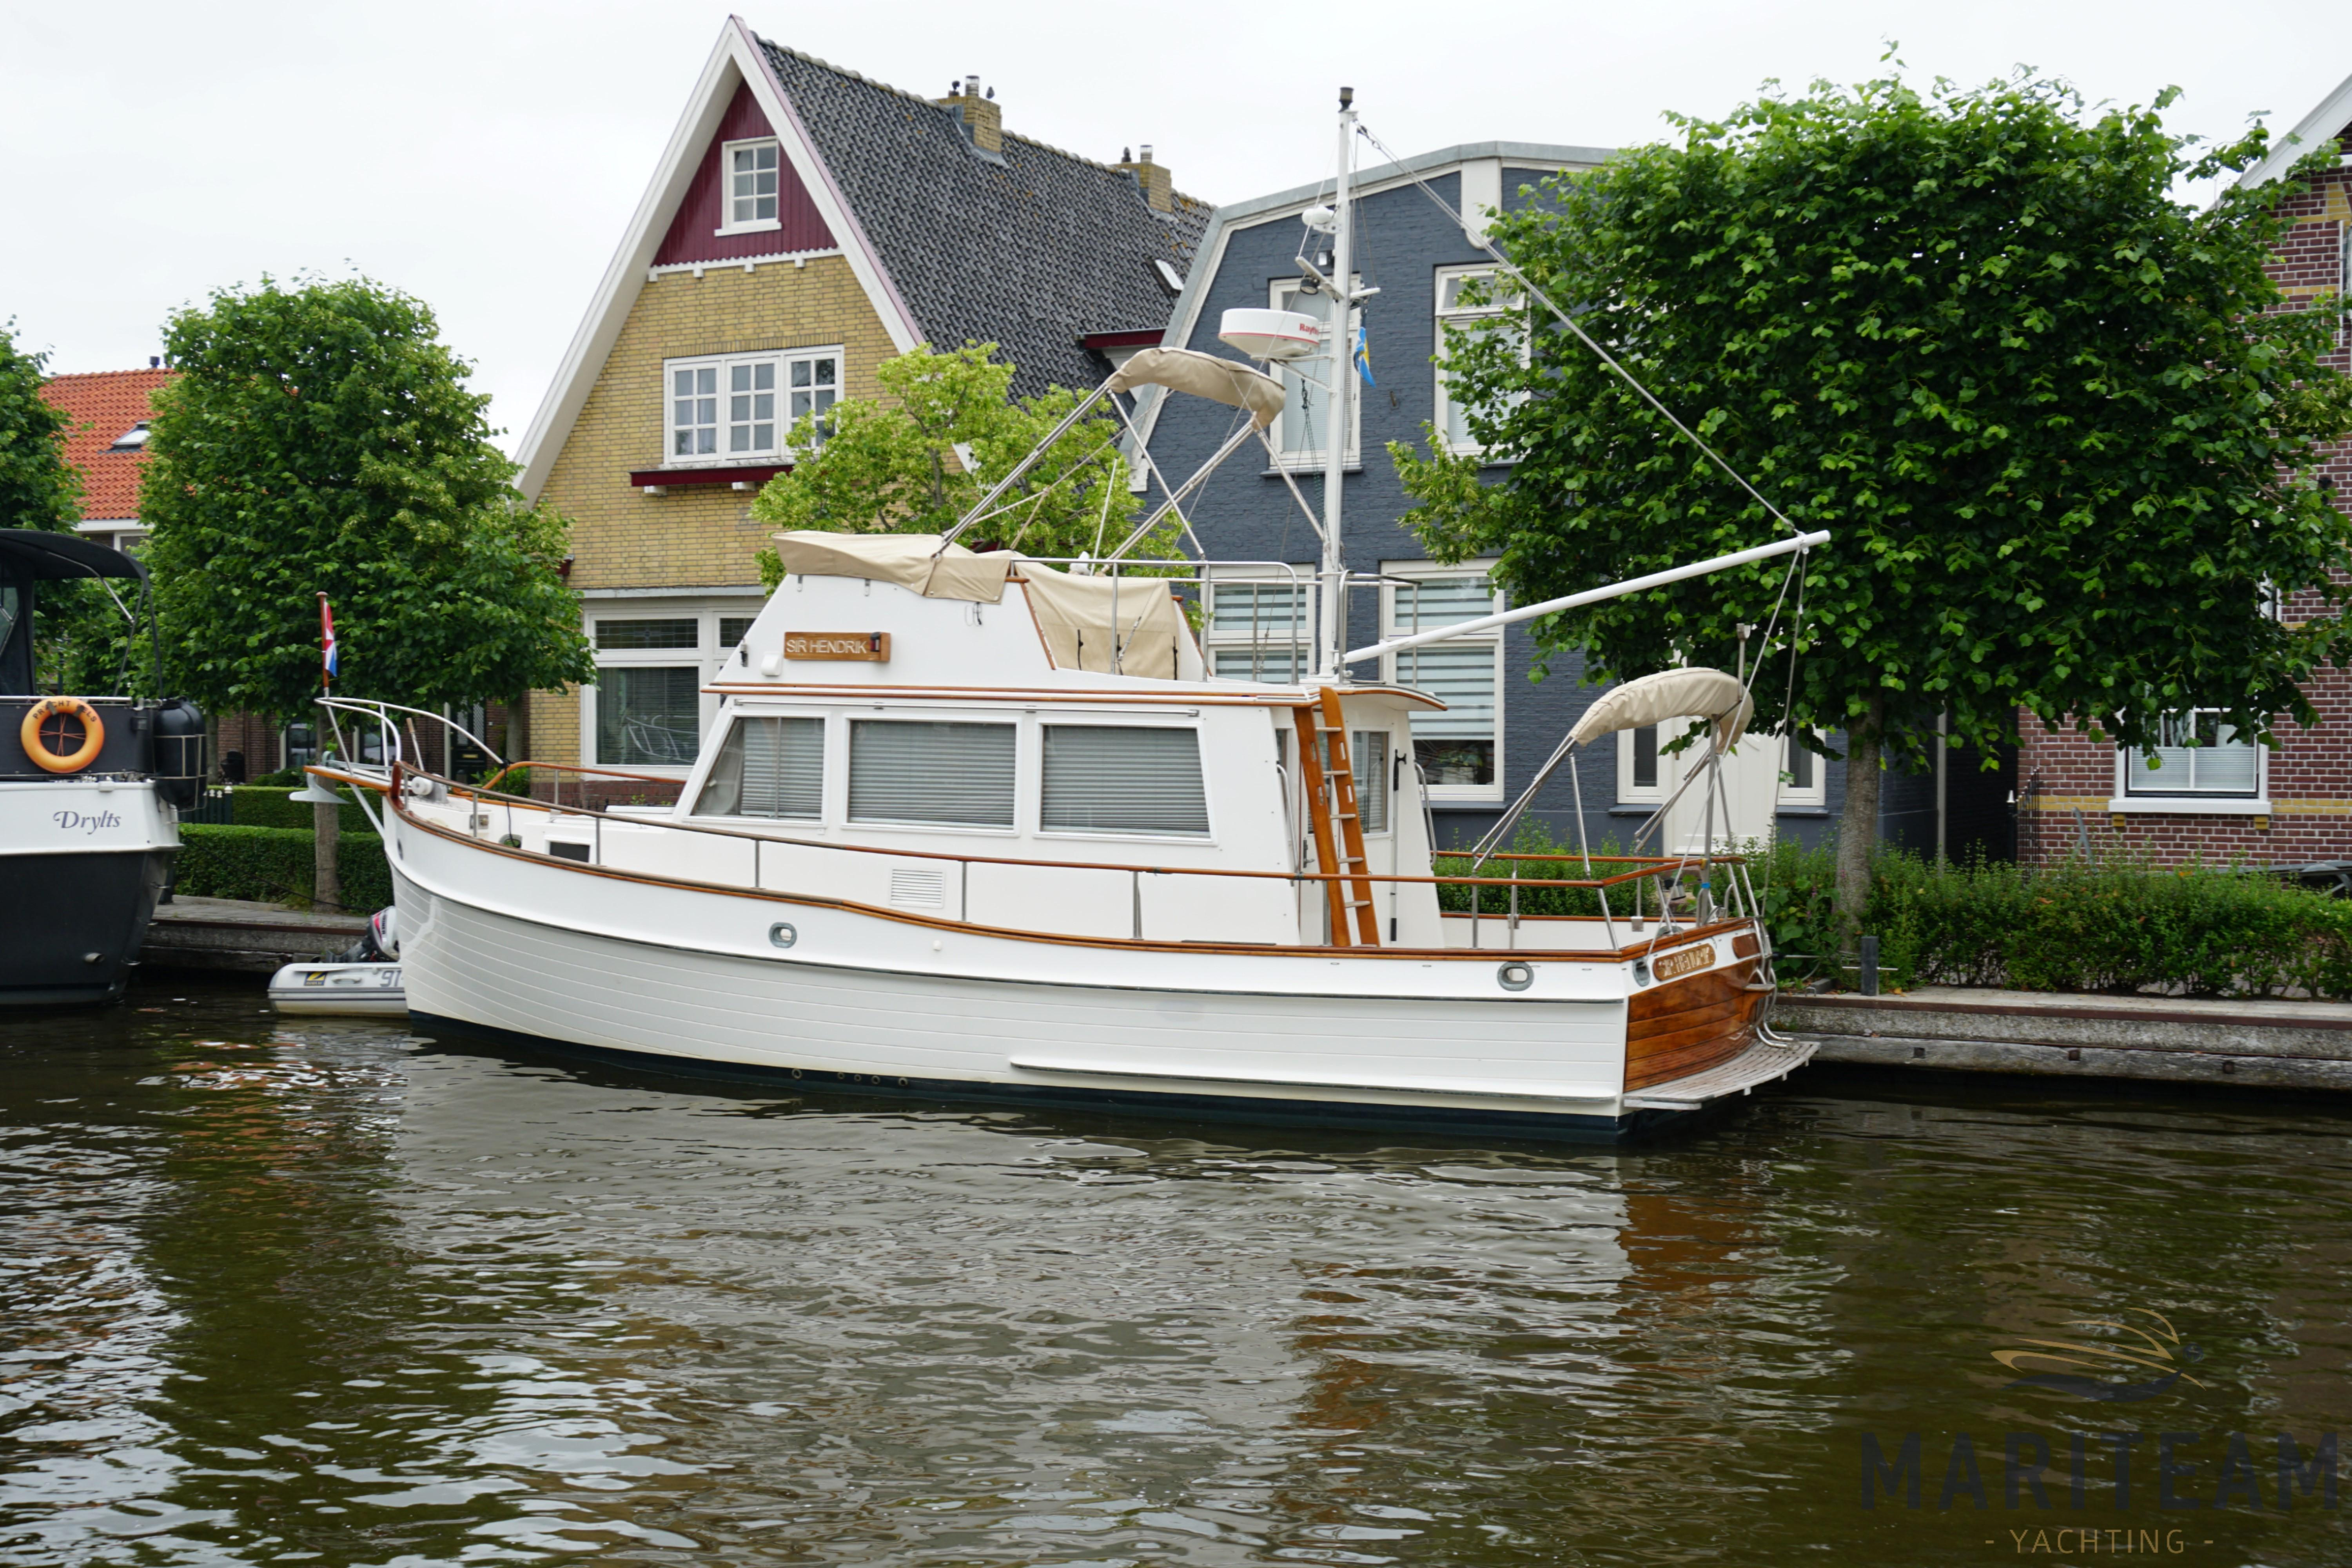 1989 Grand Banks 32 Classic Netherlands - Approved Boats